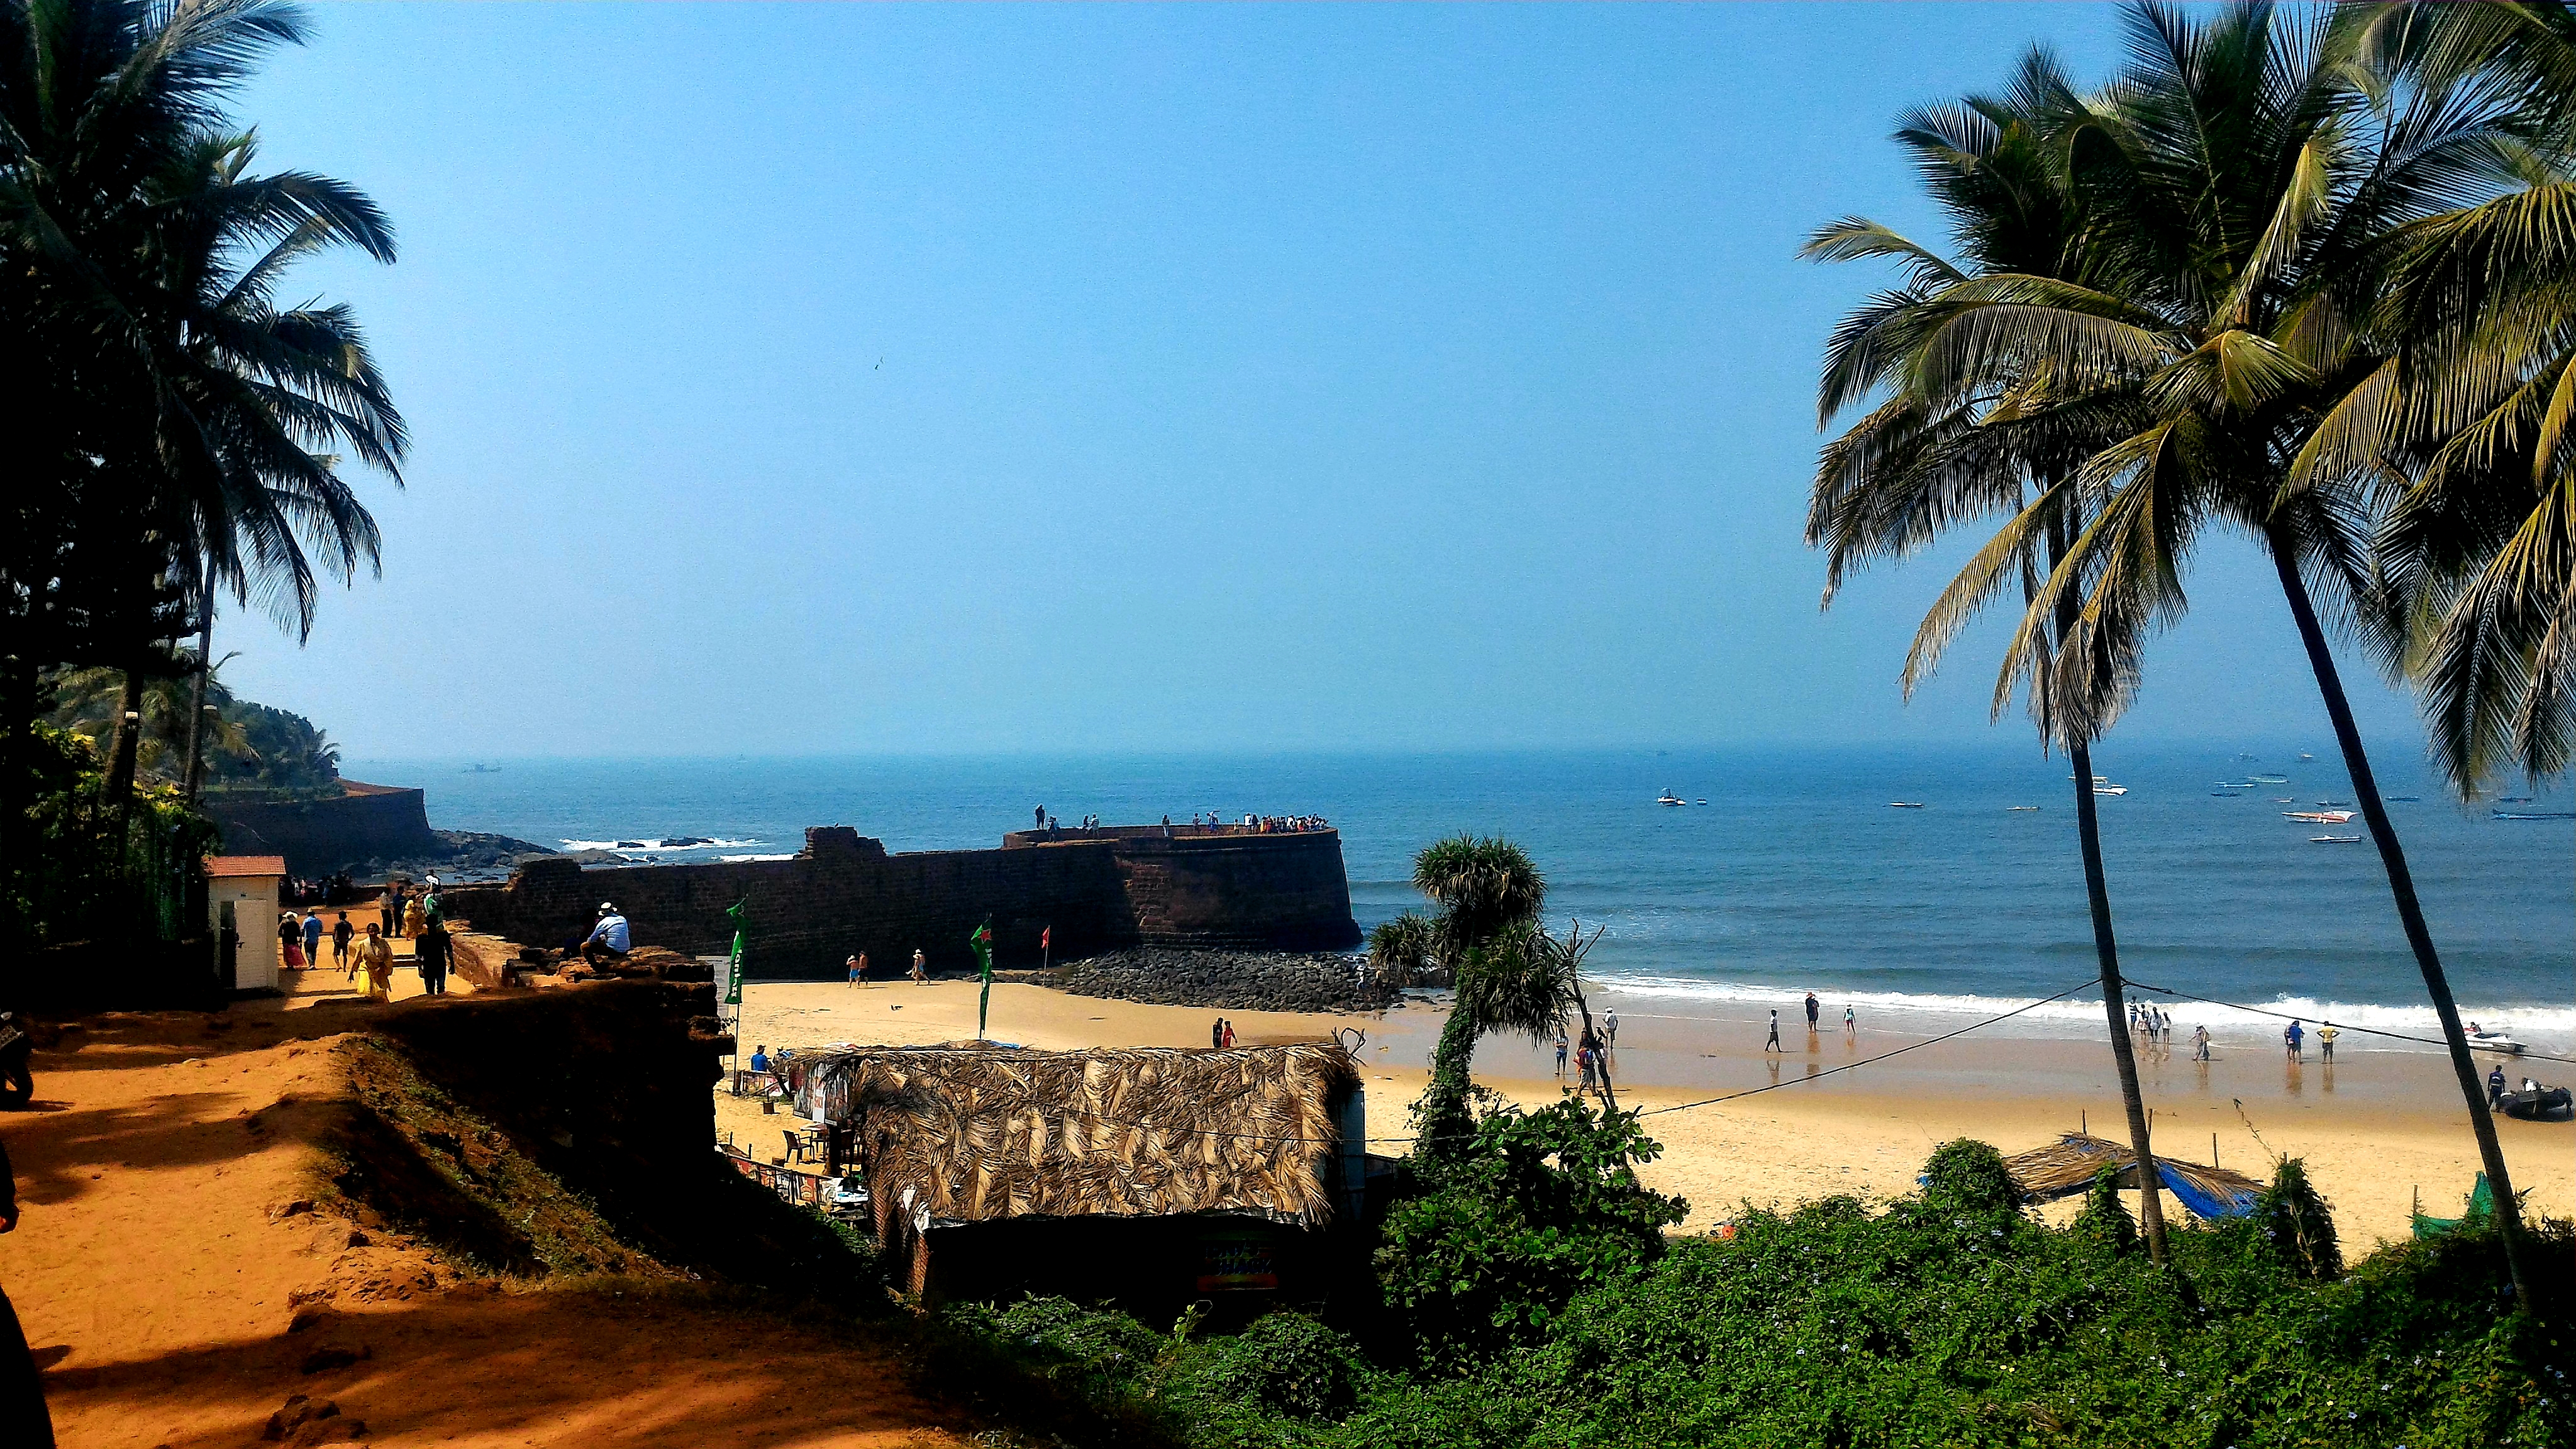 Clarity at its best ! Clear skies and clear water . Presenting the blue Goa  Picture Credits - Umang Goel.